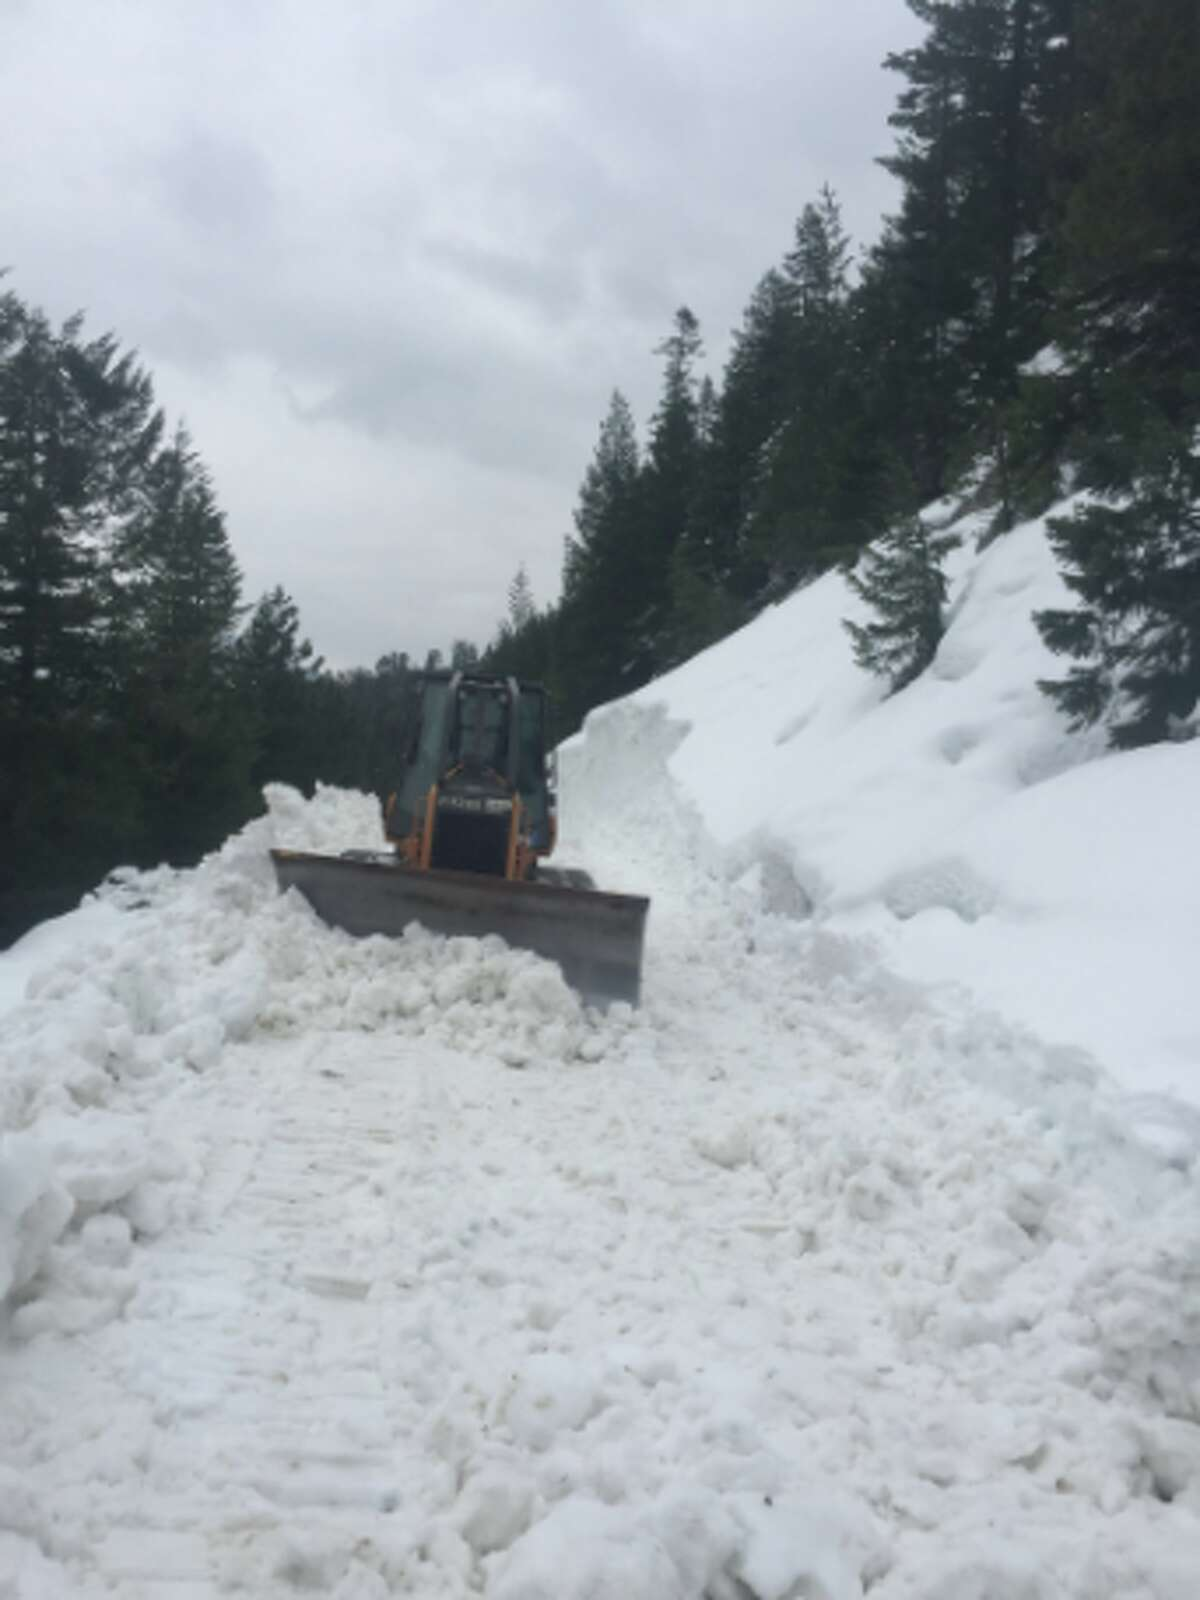 A Caltrans grader clears snow off Highway 108 over Sonora Pass in Tuolumne County in April 2017.